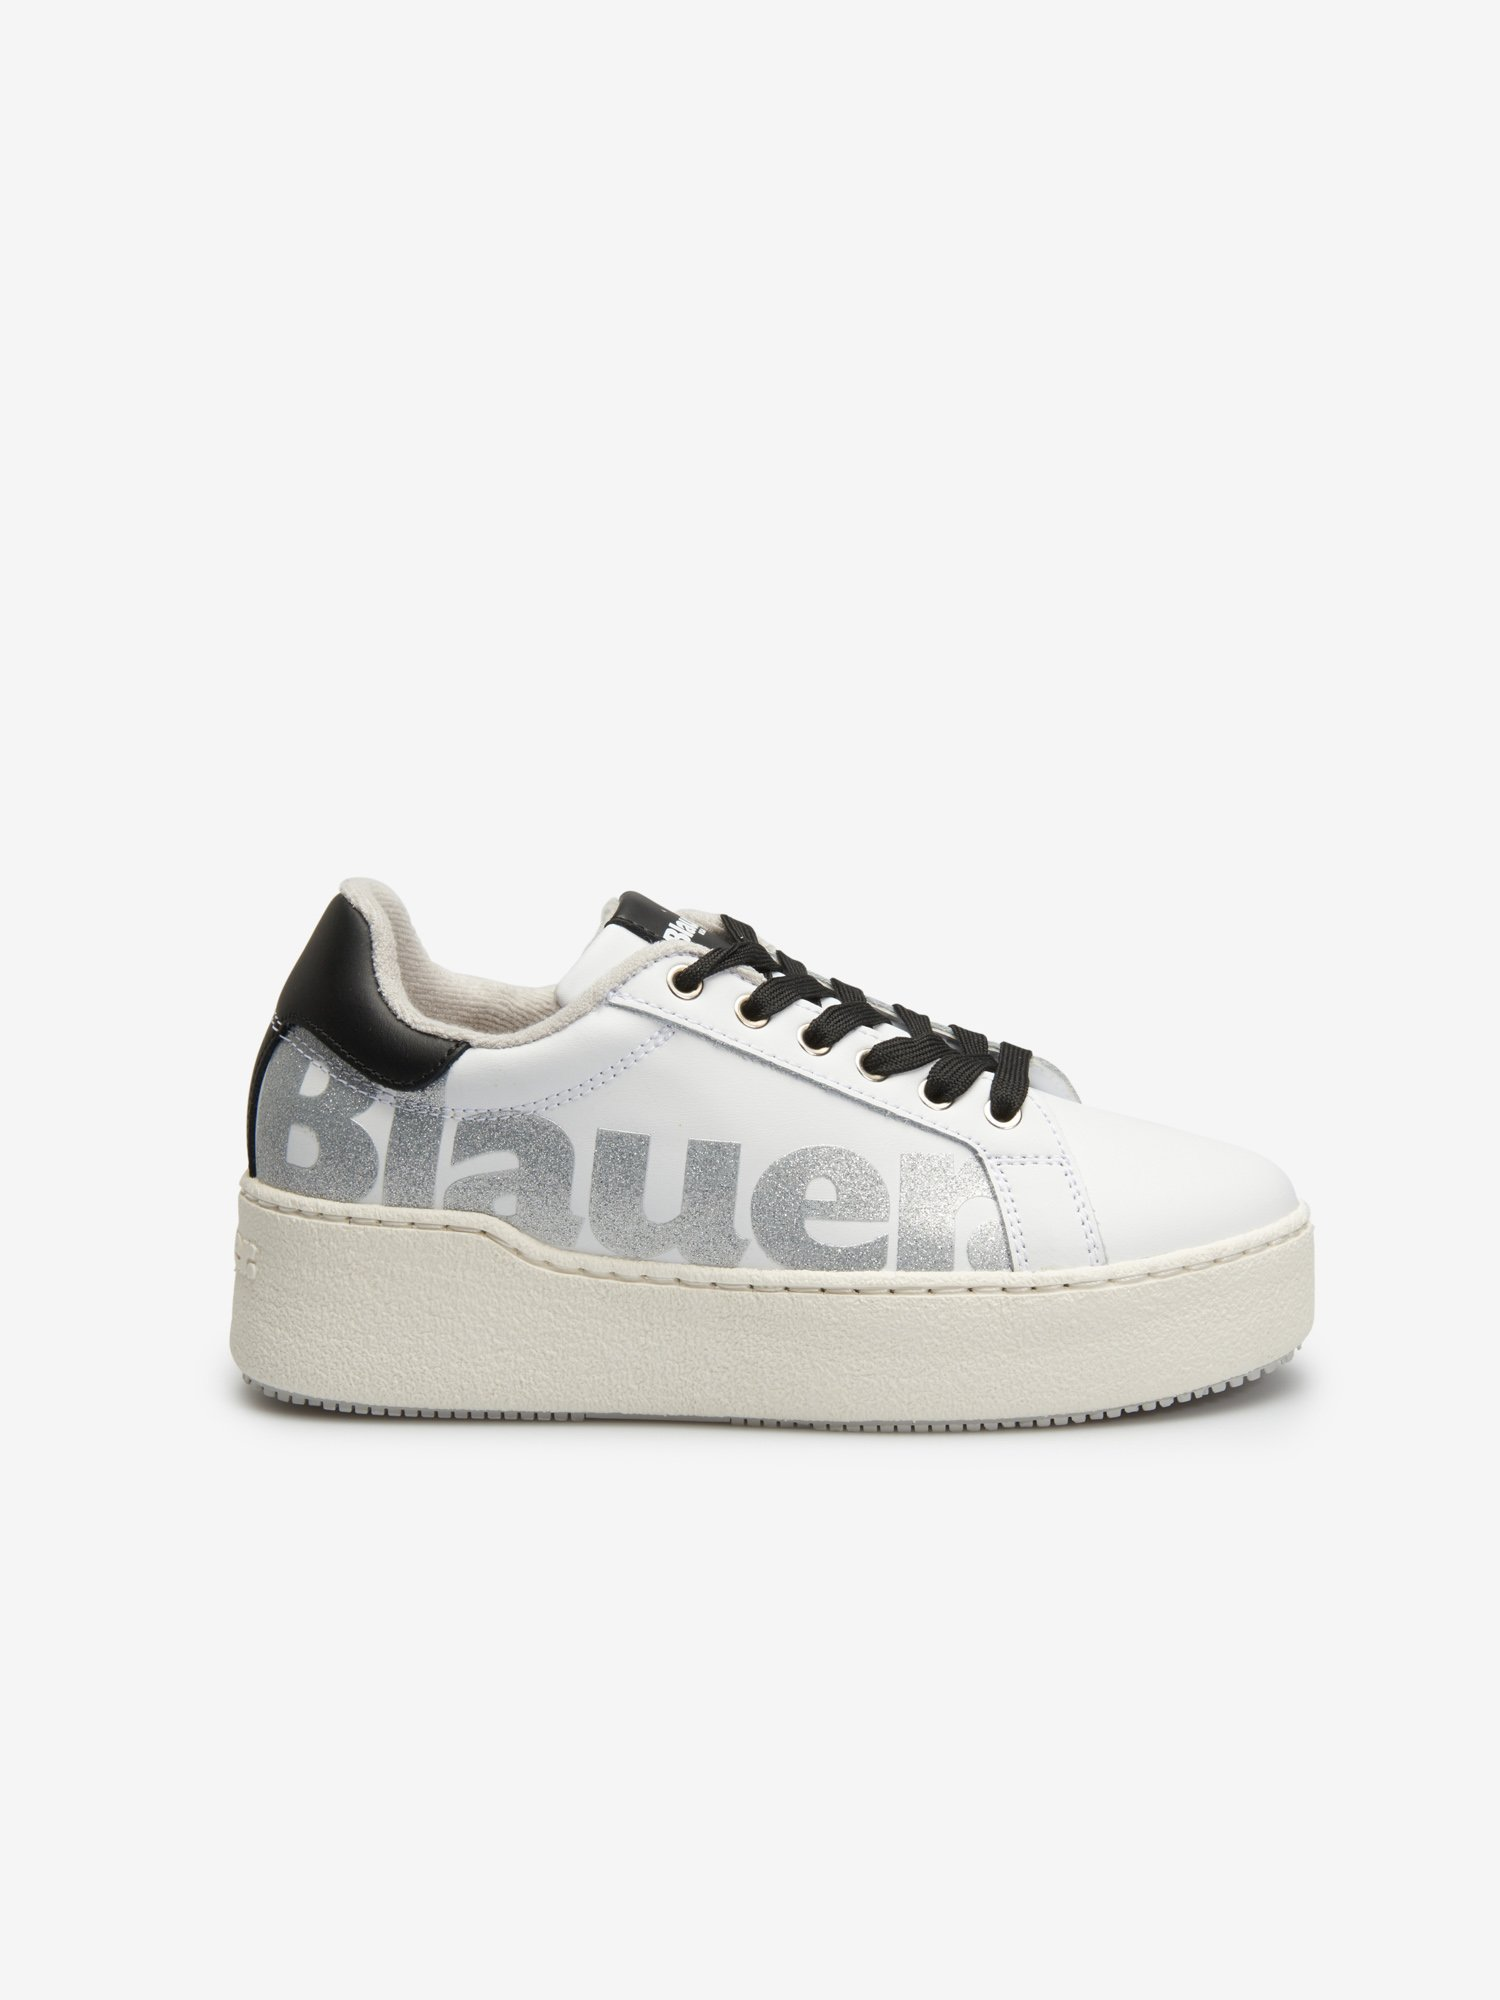 Blauer - Madeline Leather women's sneaker - Chalk - Blauer